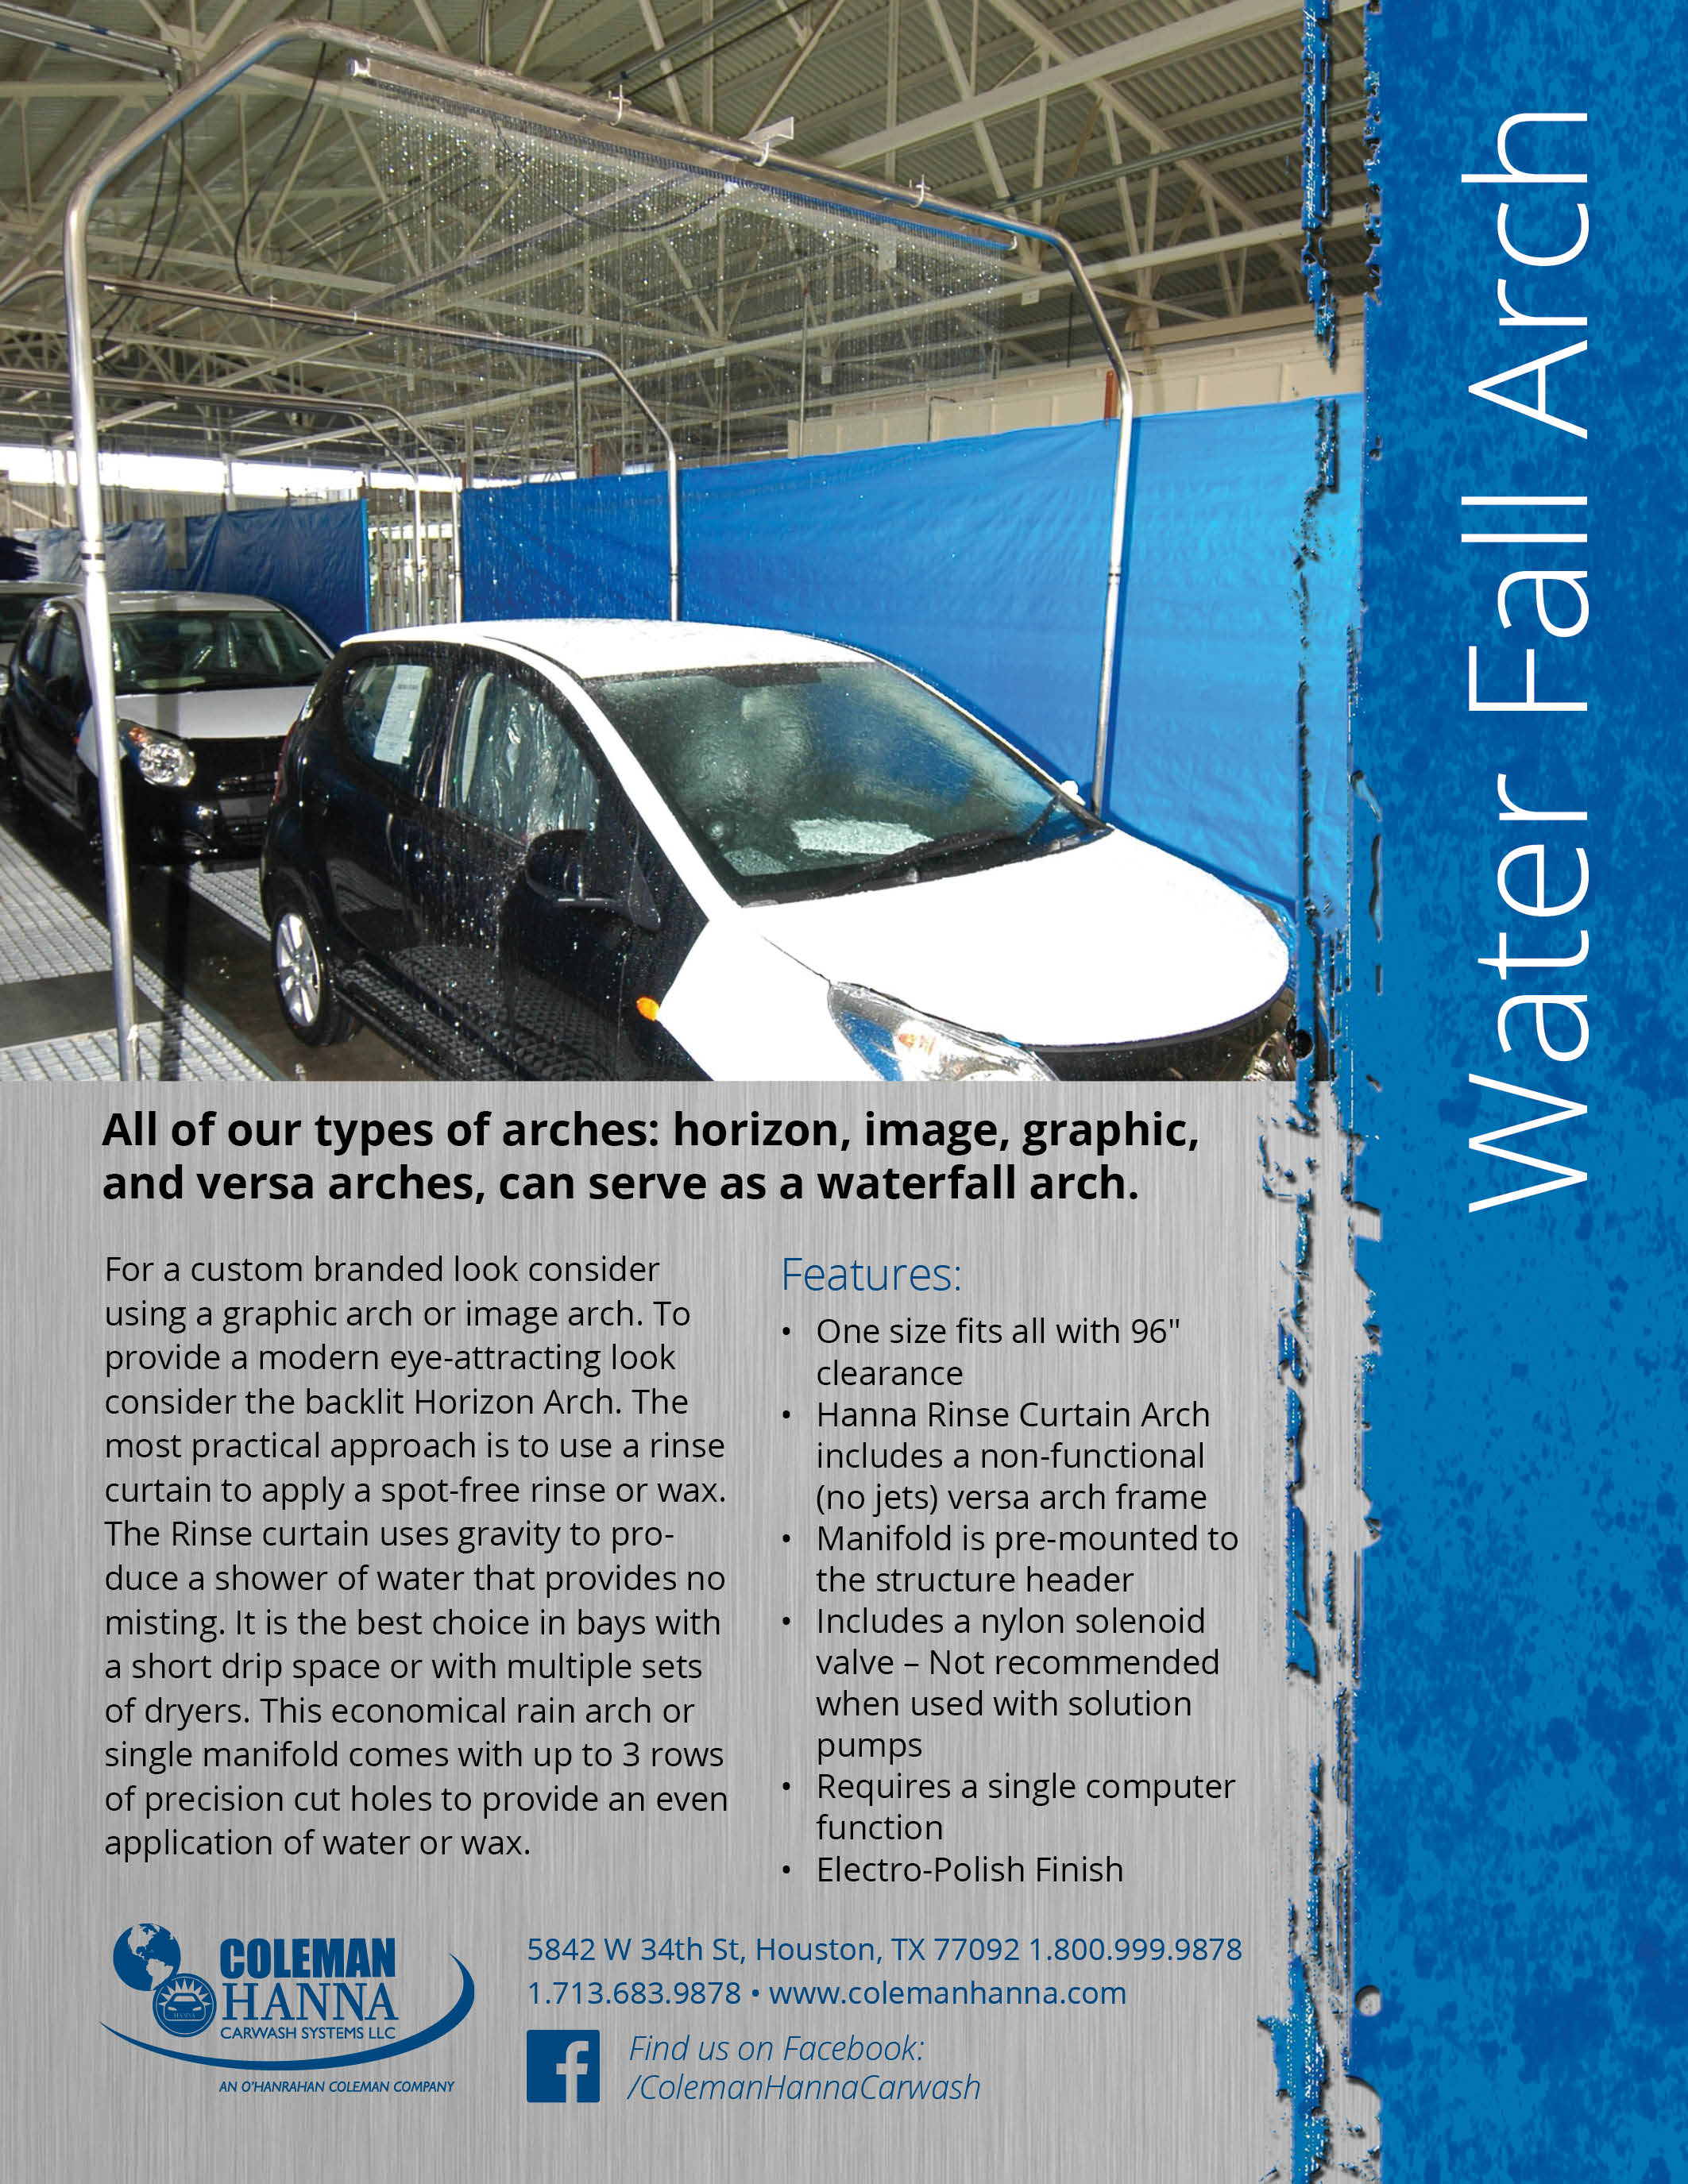 Application Arches – Coleman Hanna Carwash Systems